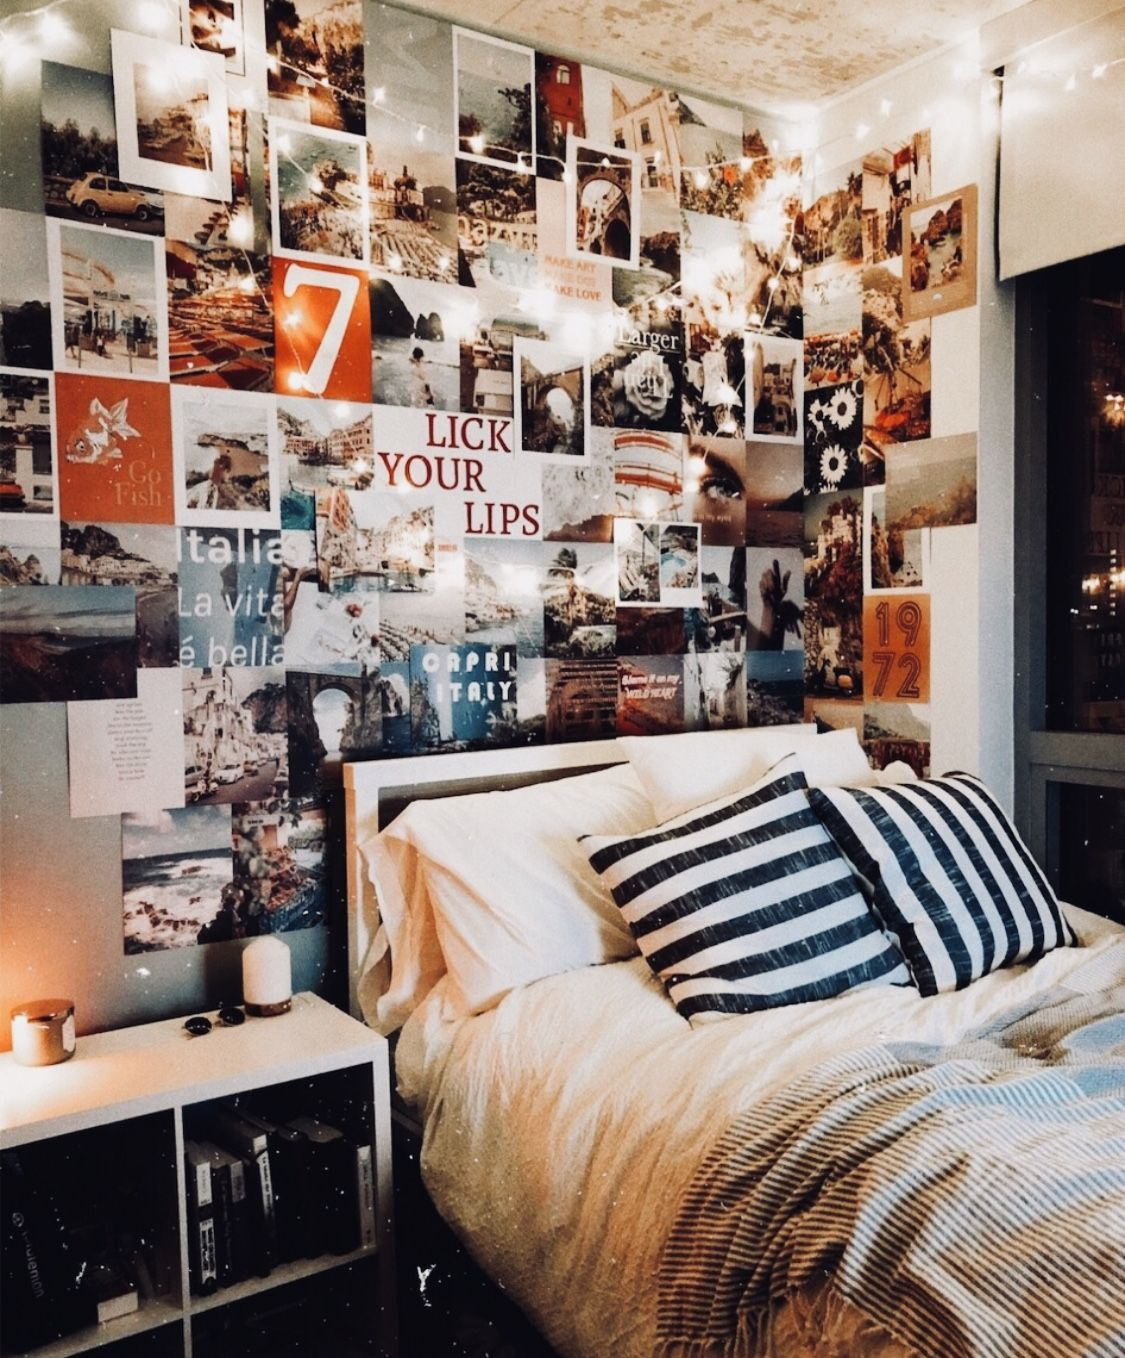 Pin By Cass On Bedroom Inspo Surf Room Cozy Room